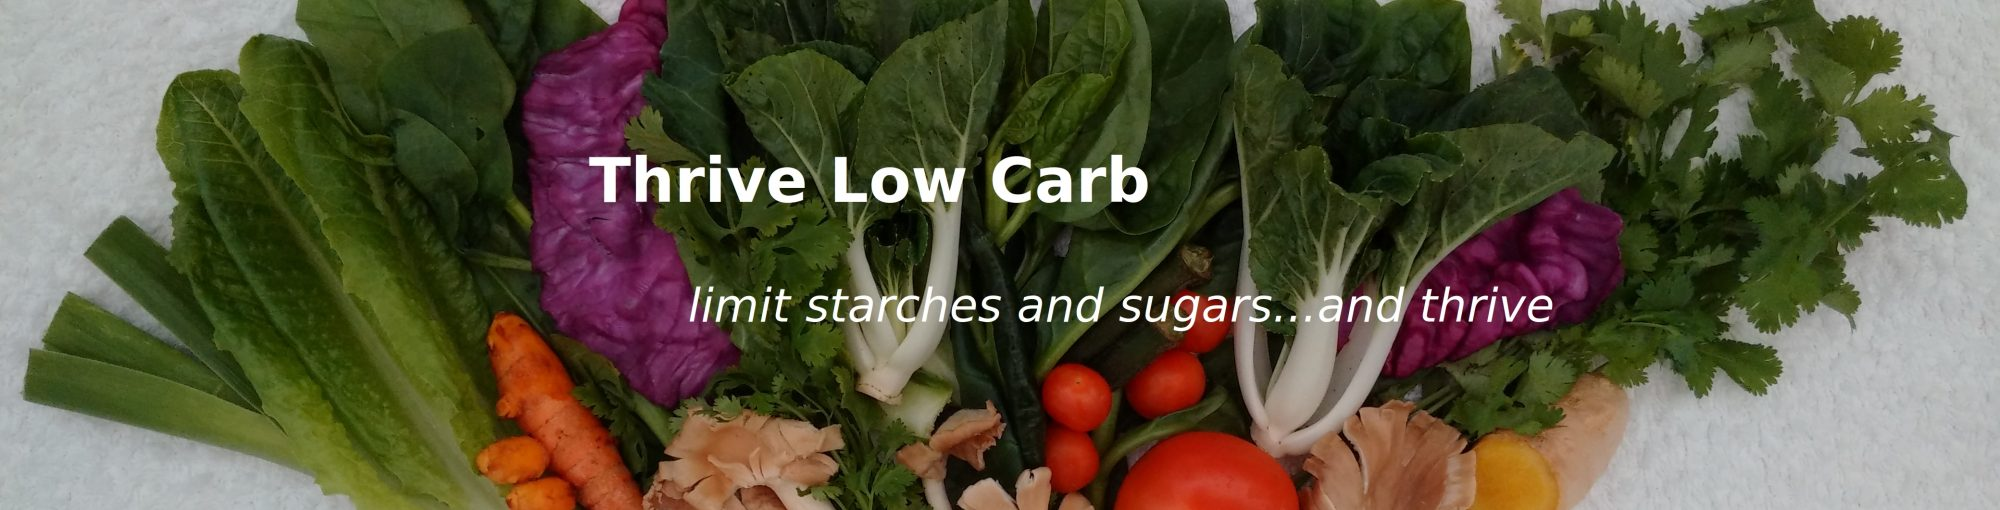 Thrive Low Carb